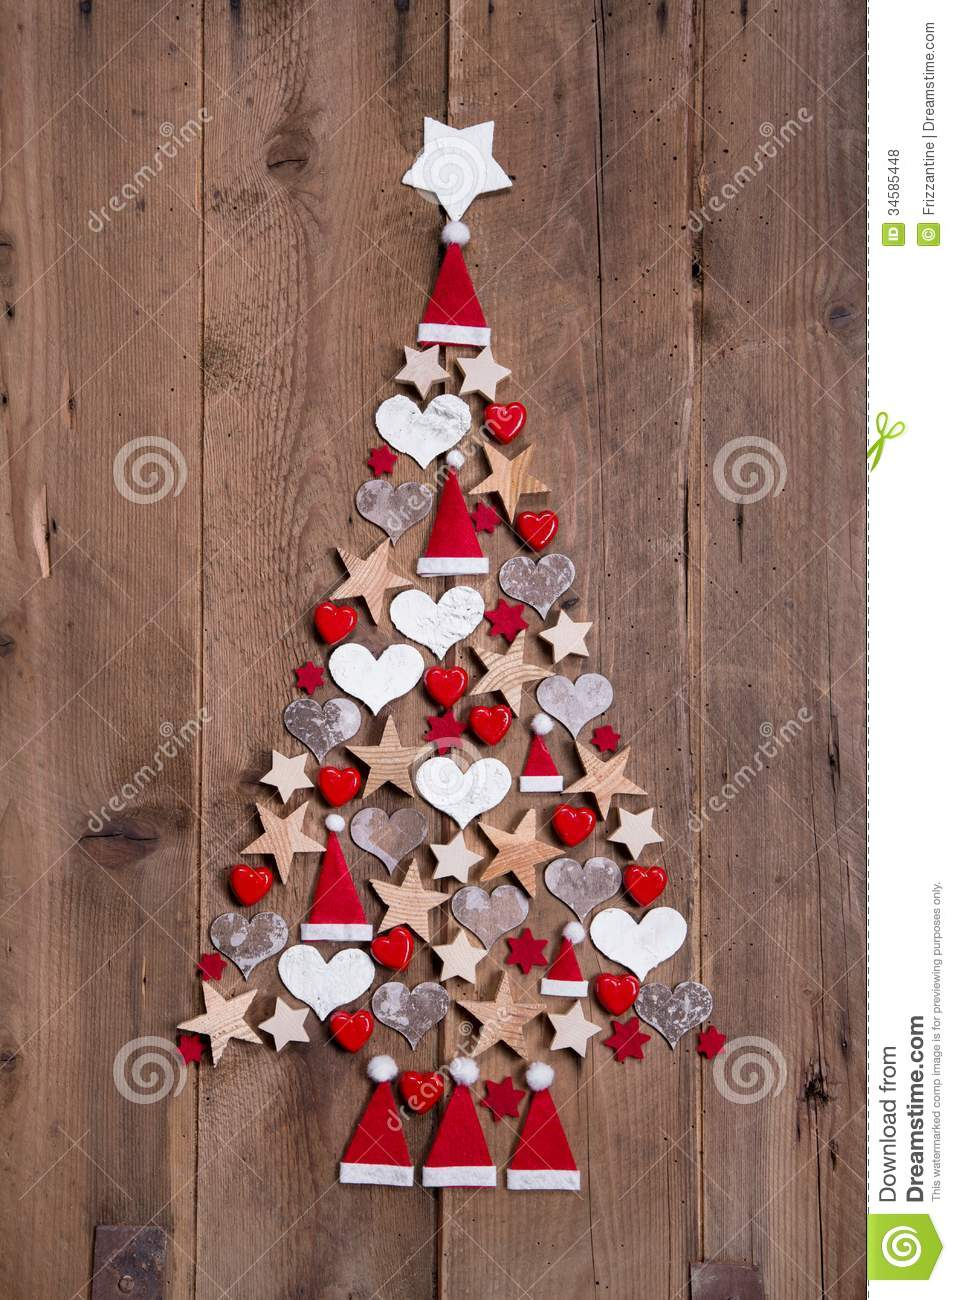 new design for a christmas tree red and white decoration